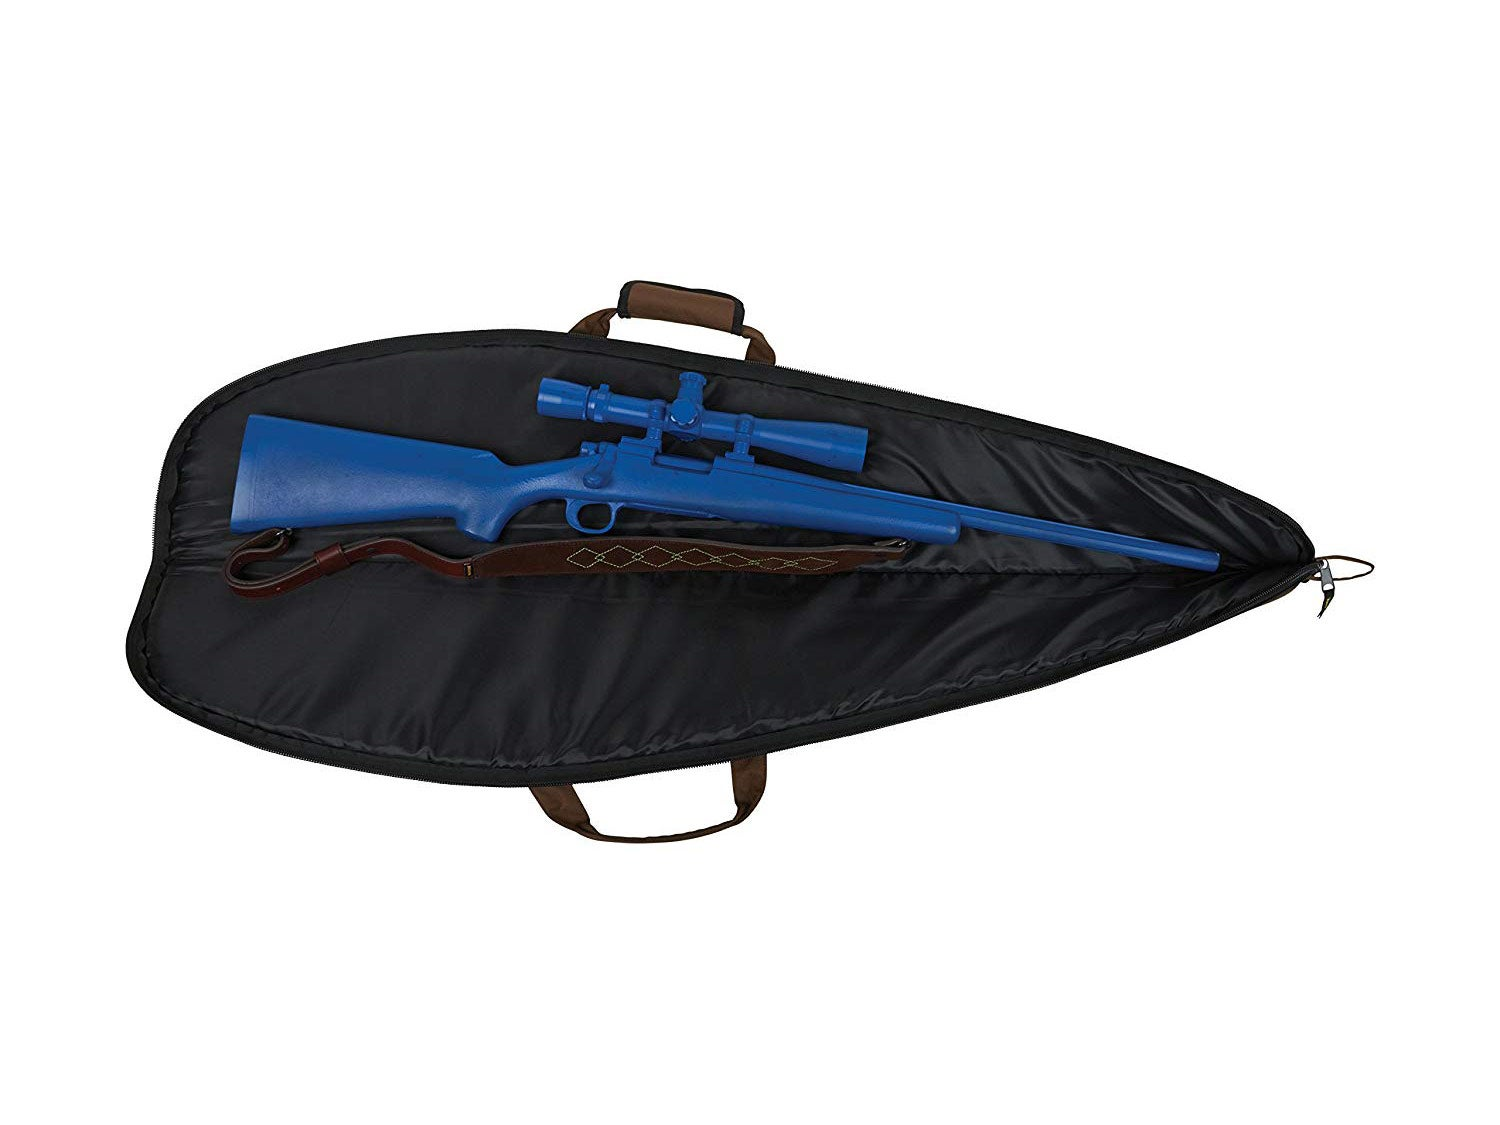 3 Things to Consider Before You Buy a Soft-sided Gun Case